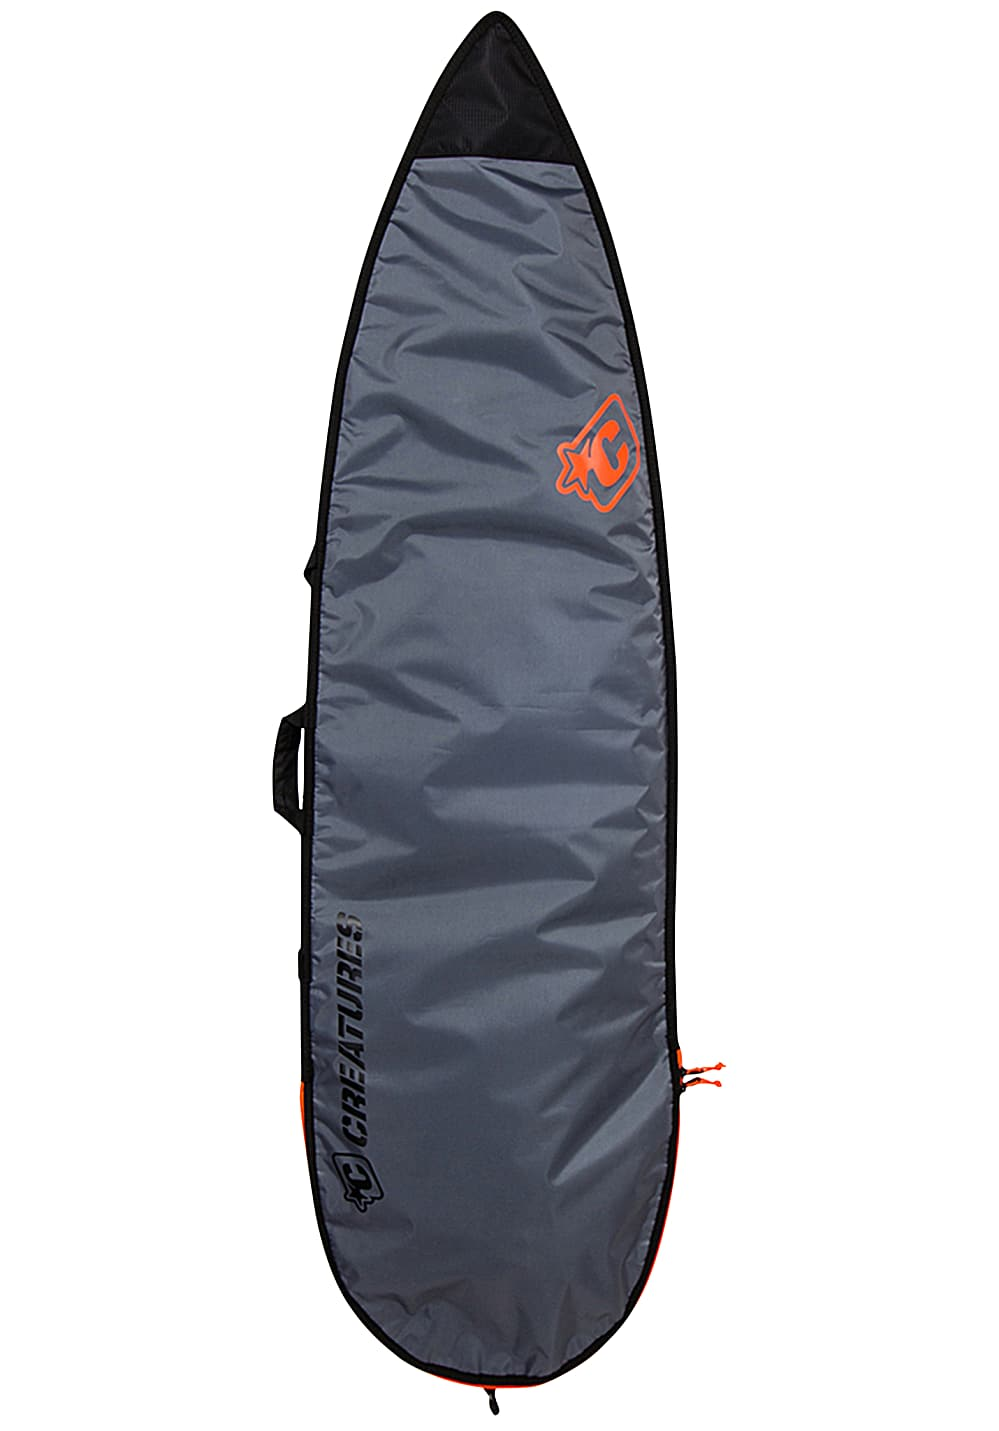 Creatures of Leisure Shortboard Lite Cover 6´0´´ Surfboardtasche - Grau